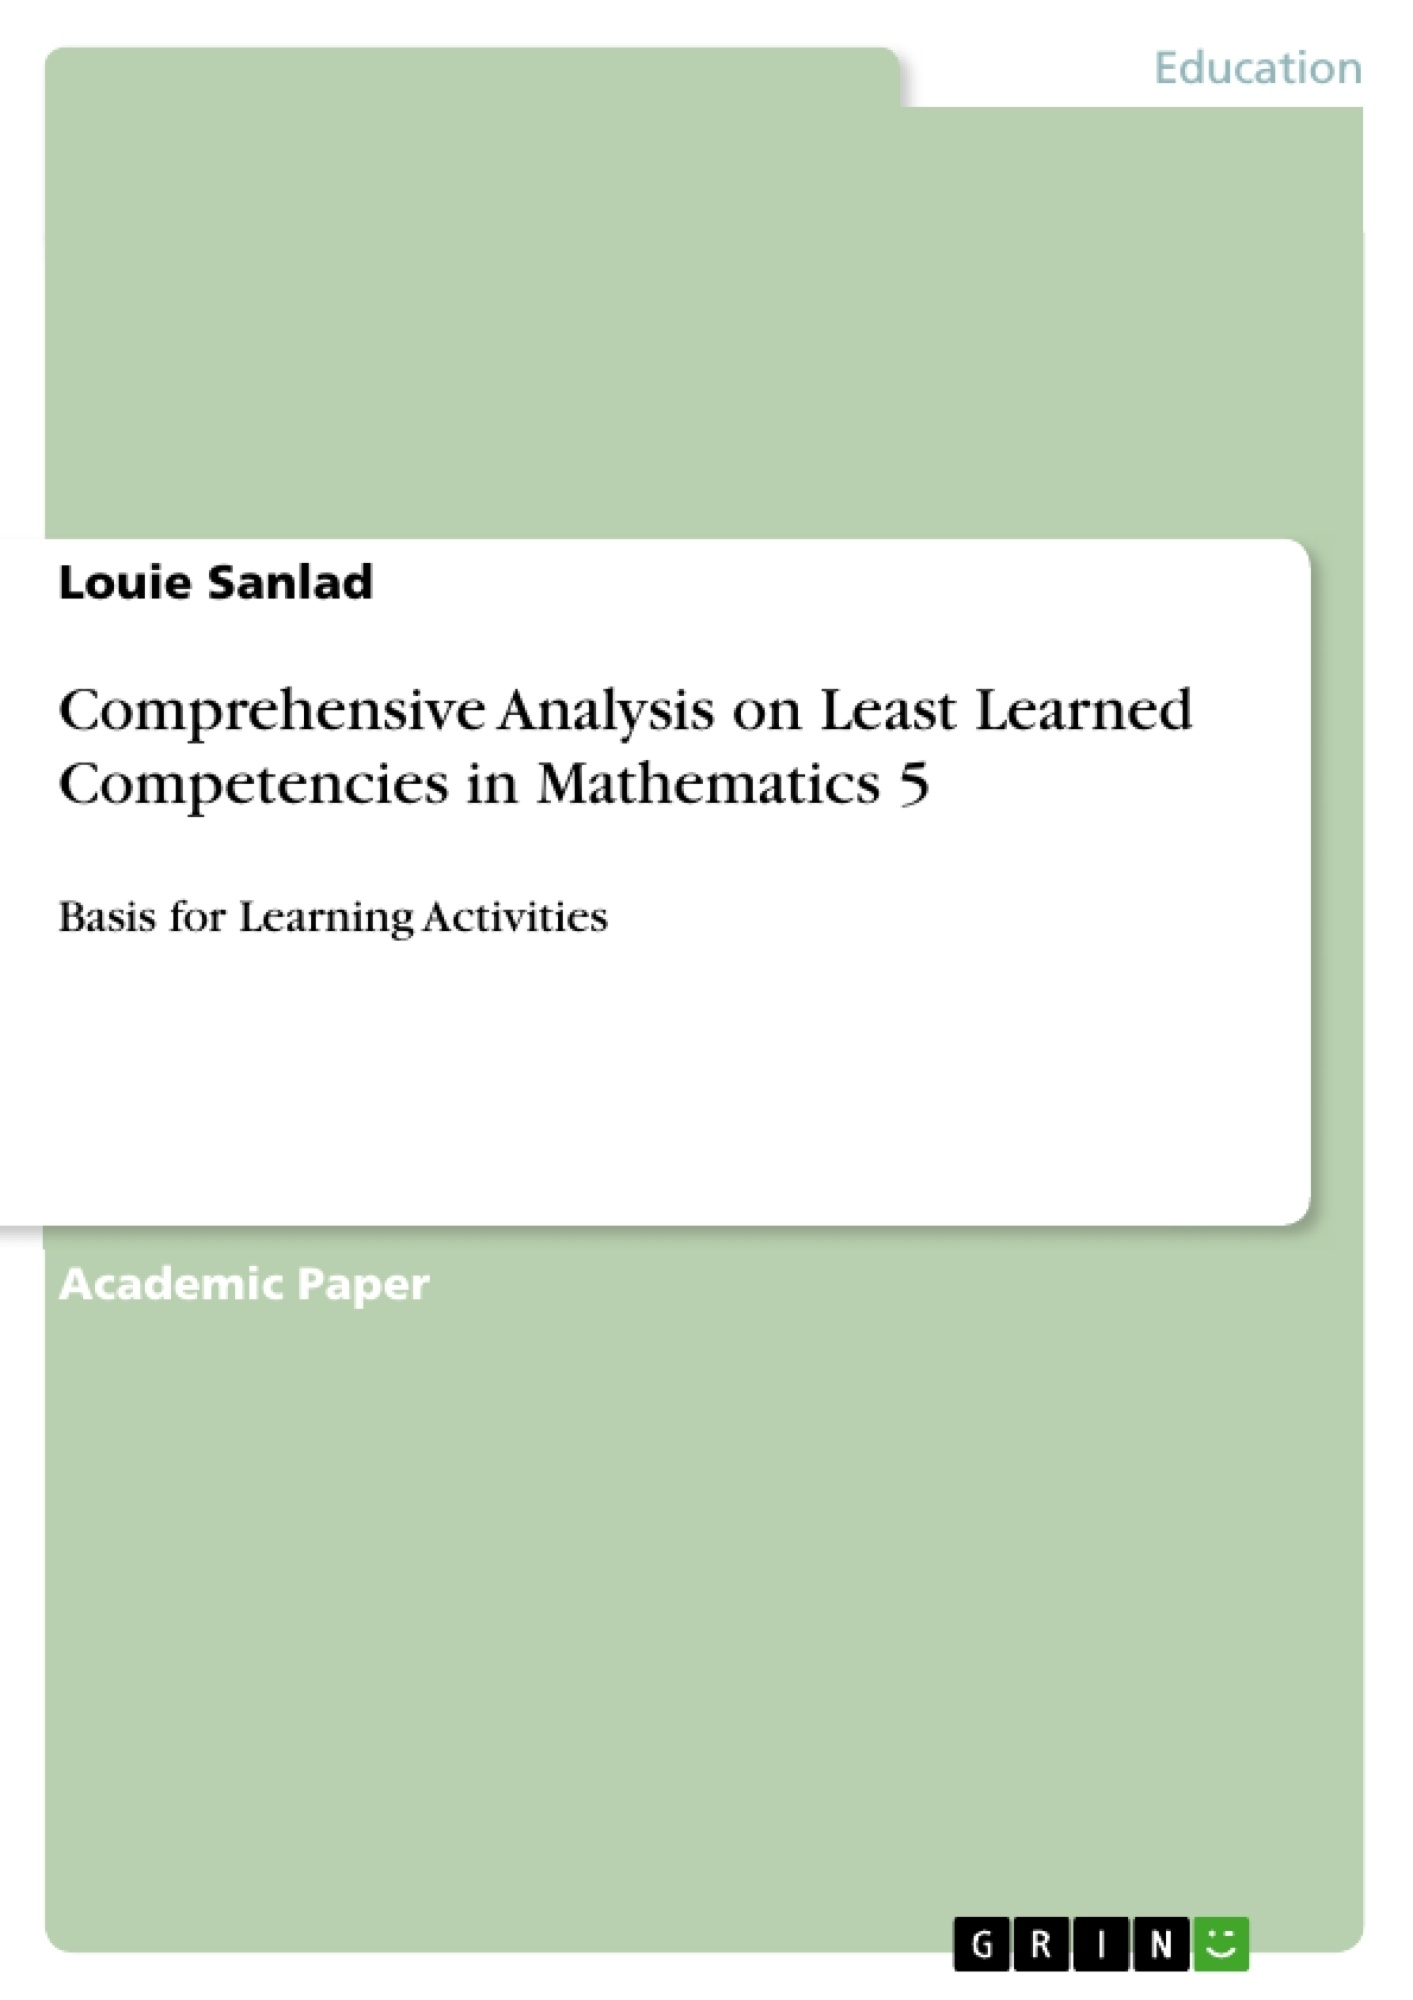 Title: Comprehensive Analysis on Least Learned Competencies in Mathematics 5